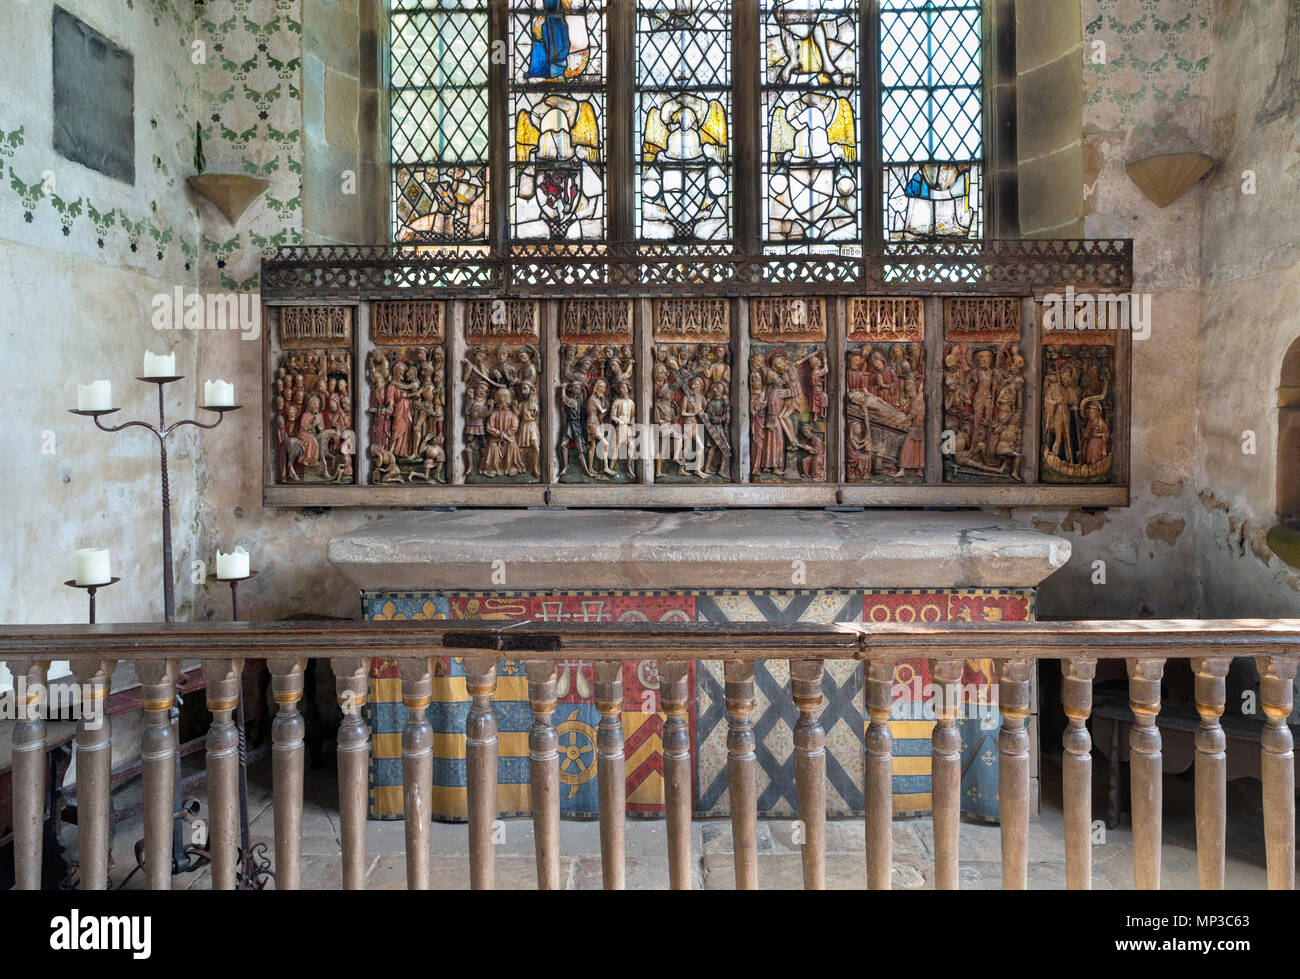 Alabaster reredos in the Chapel at Haddon Hall, near Bakewell, Derbyshire, England, UK - Stock Image